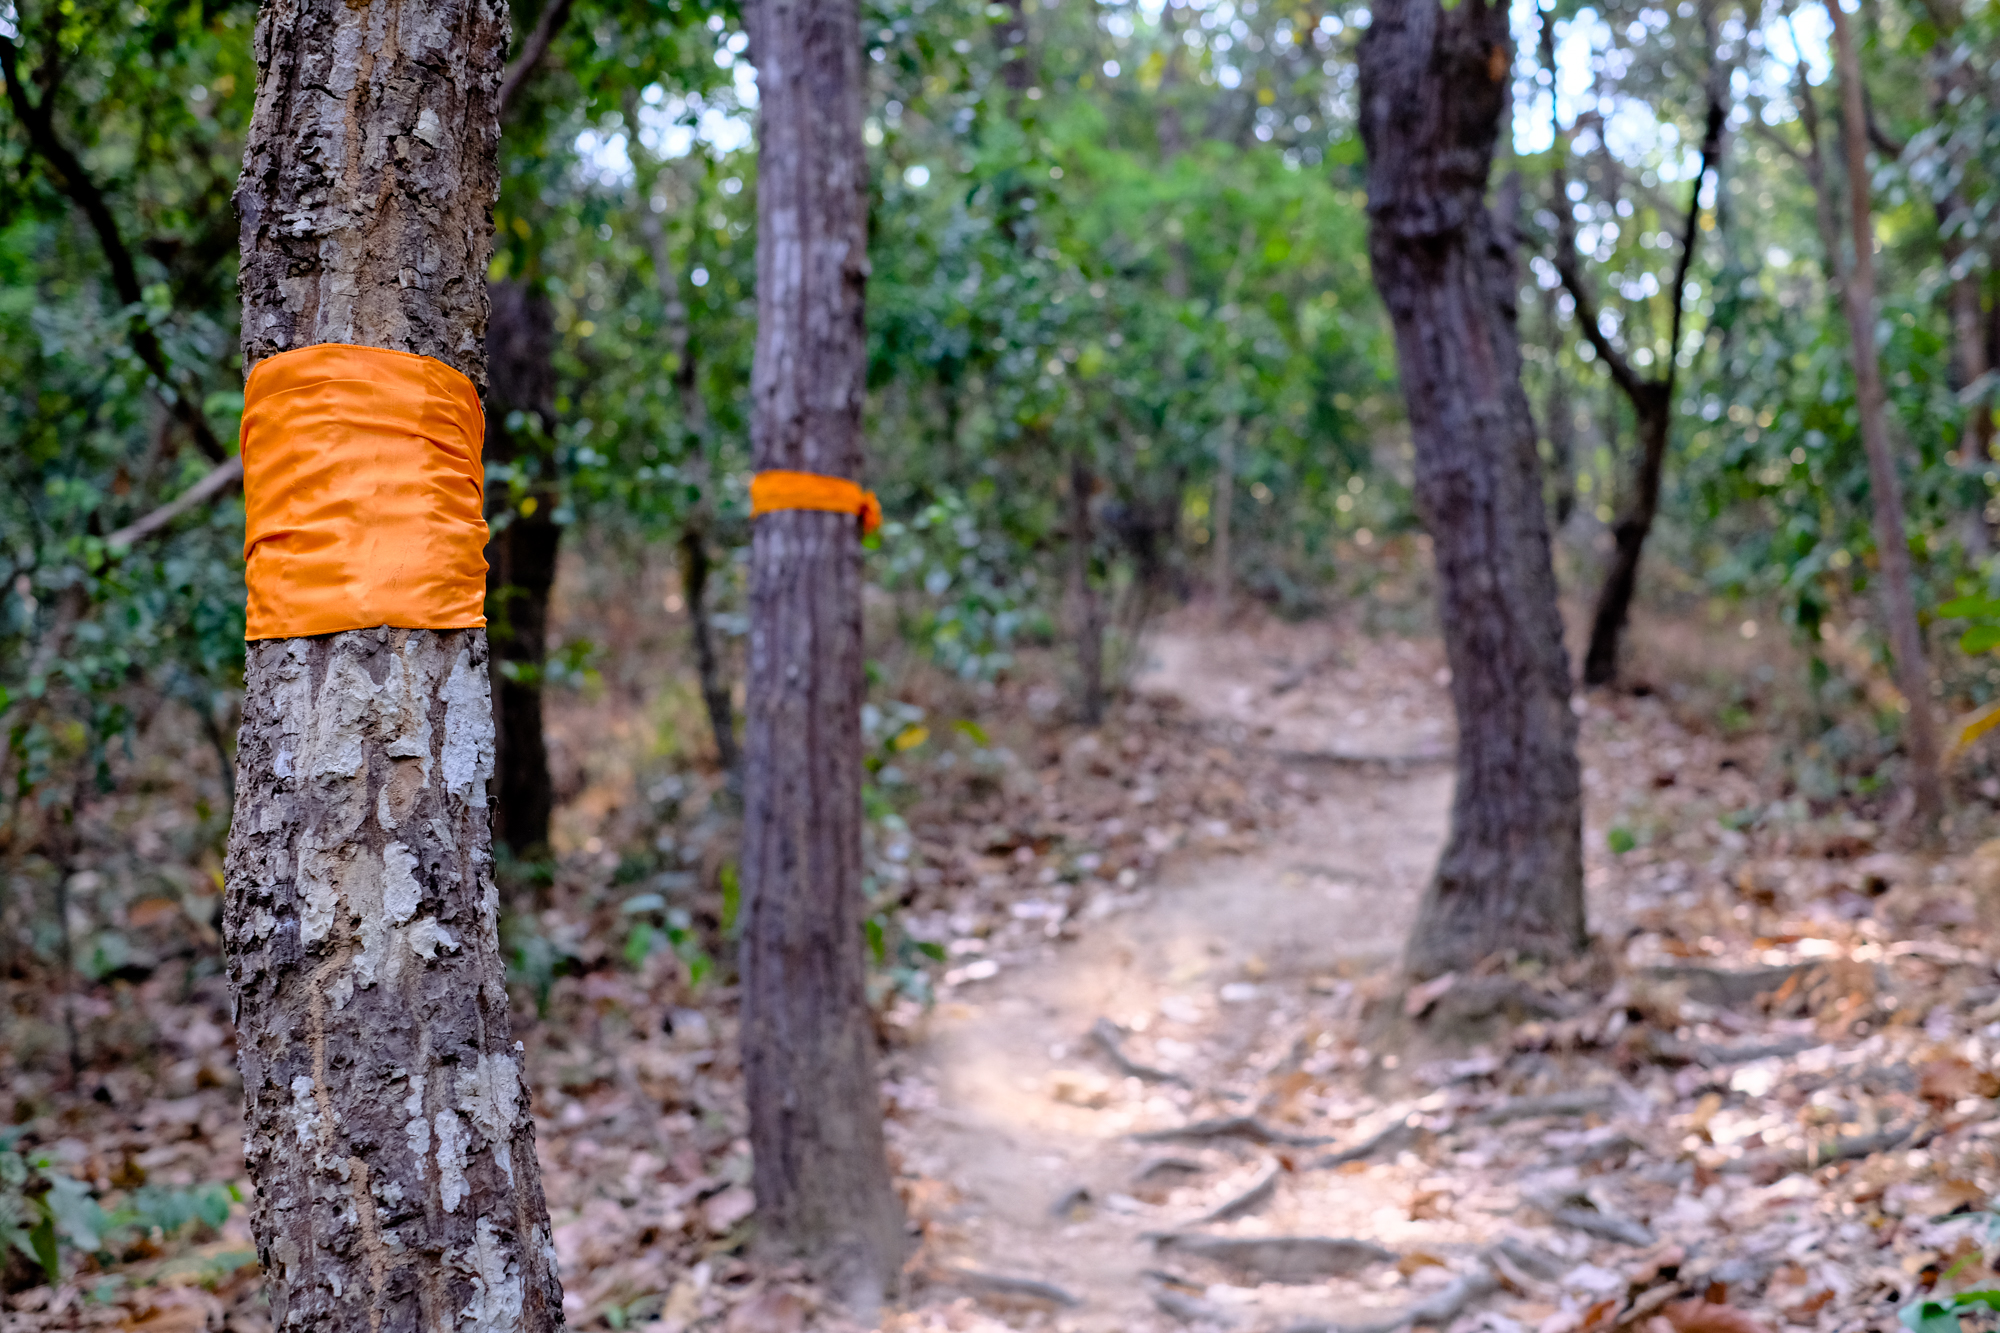 Monks marked the trail with orange bands wrapped around trees